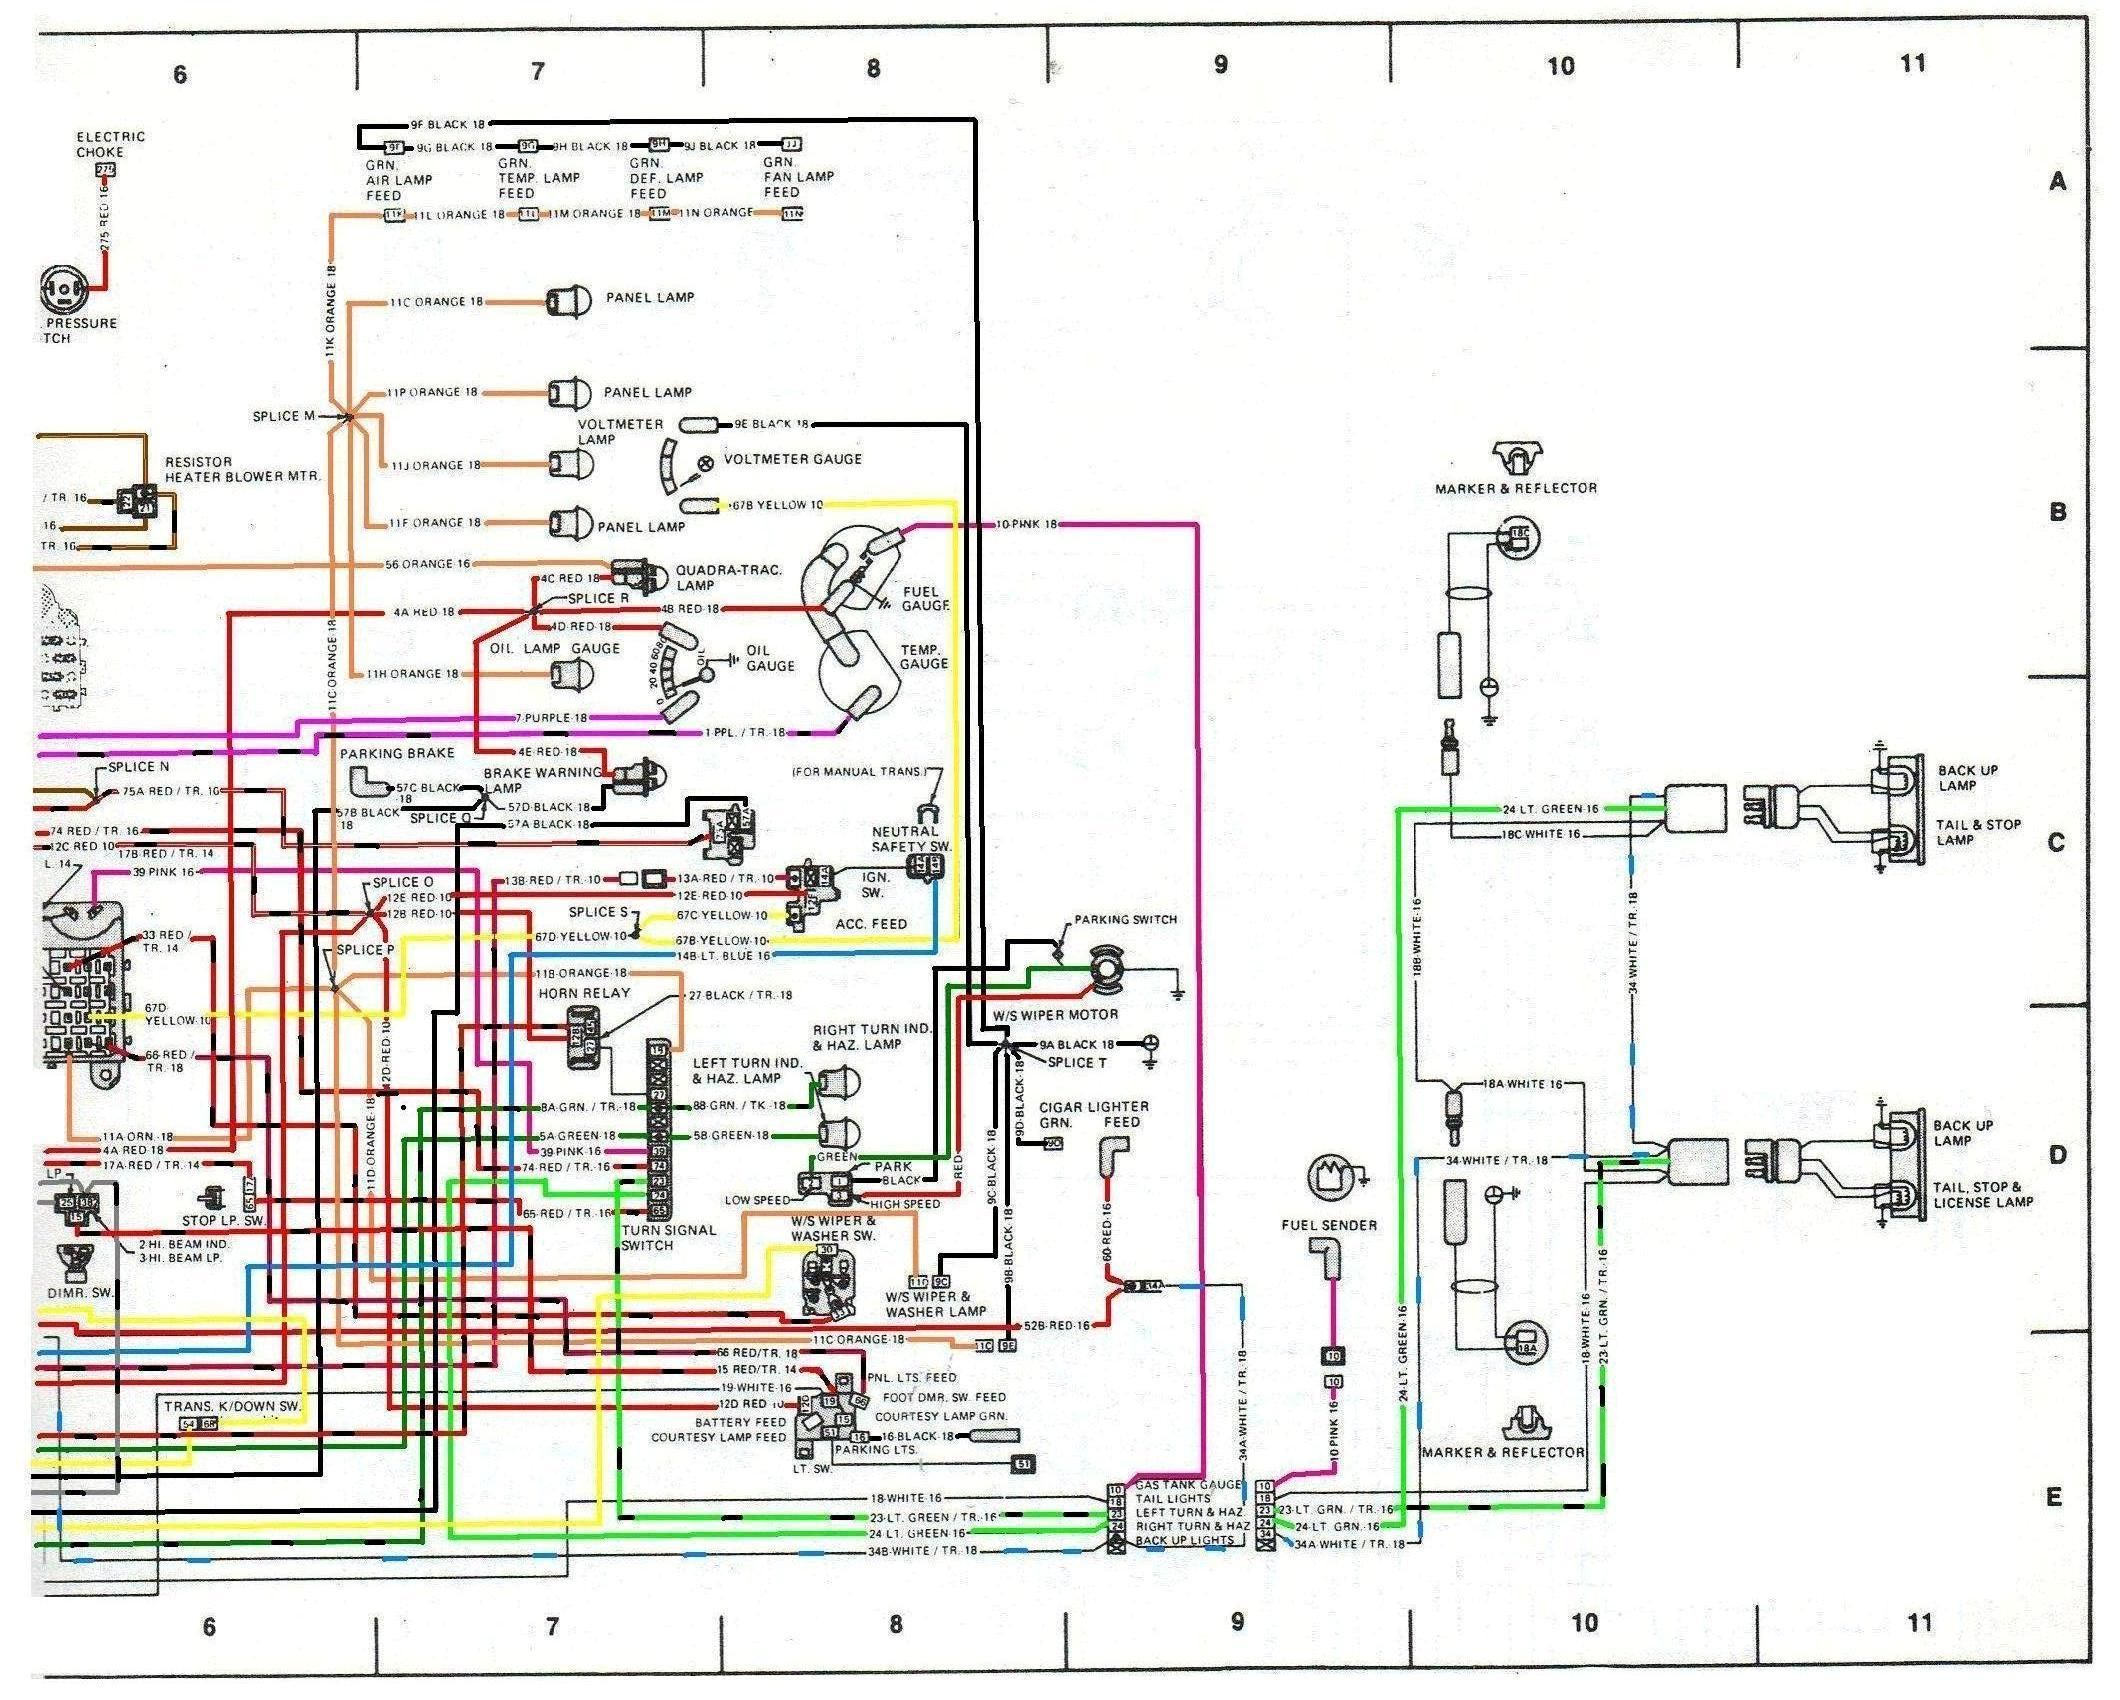 83 Jeep Cj7 Wiring Diagram Starting Know About Wiring Diagram \u2022 Jeep  Wagoneer Wiring Diagram Jeep Cj Wiring Diagrams